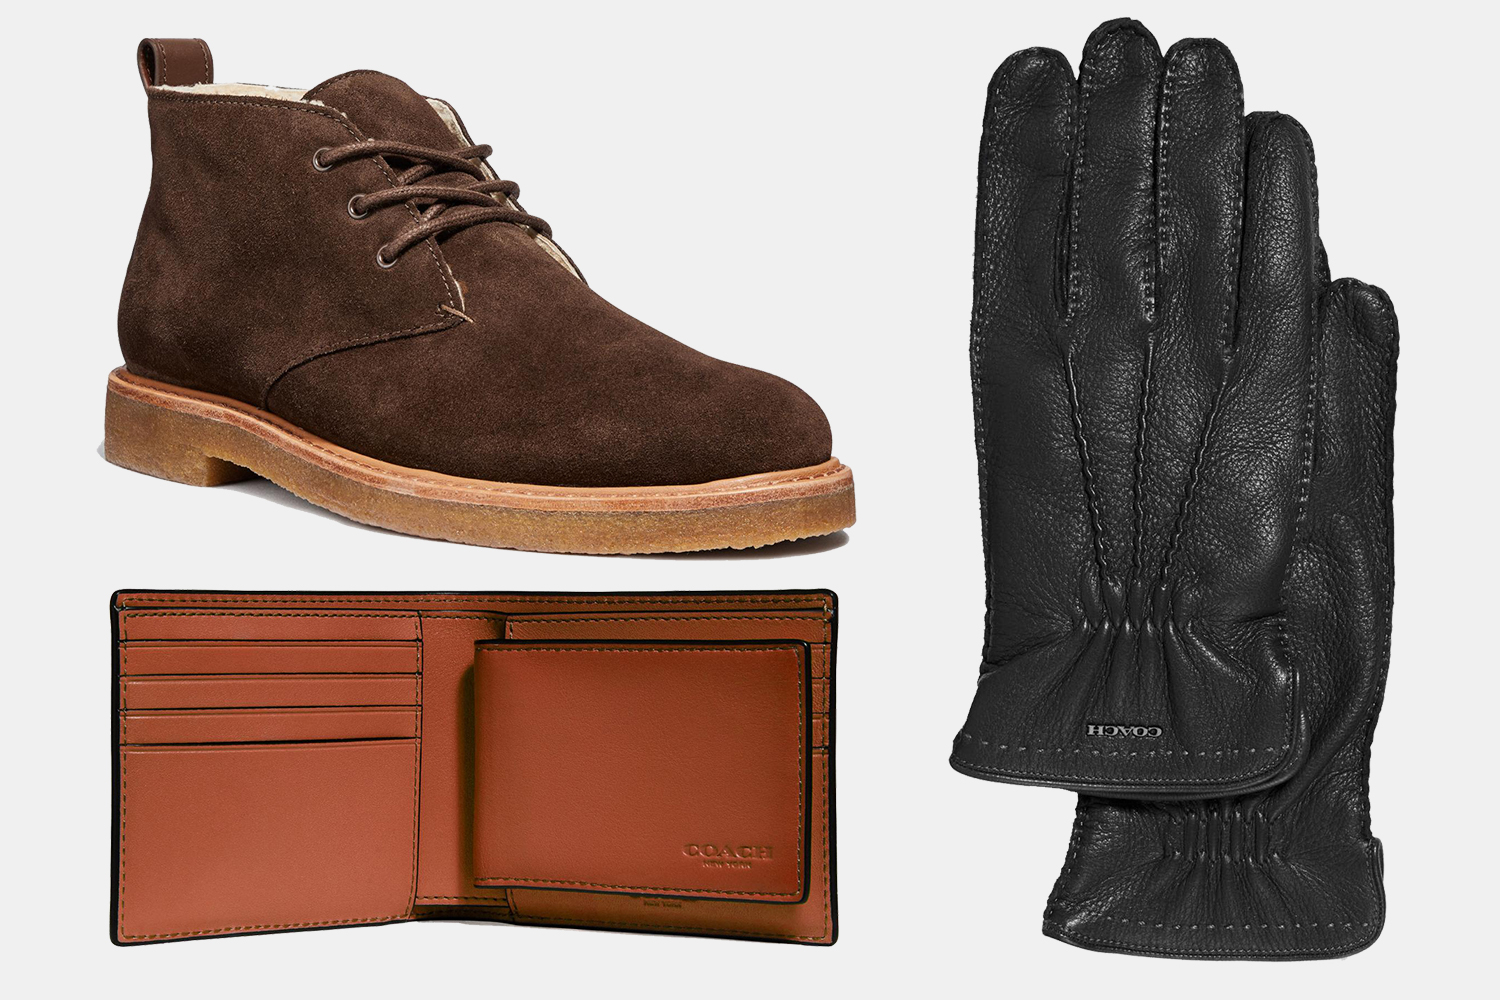 Coach Men's Boots, Wallets and Gloves